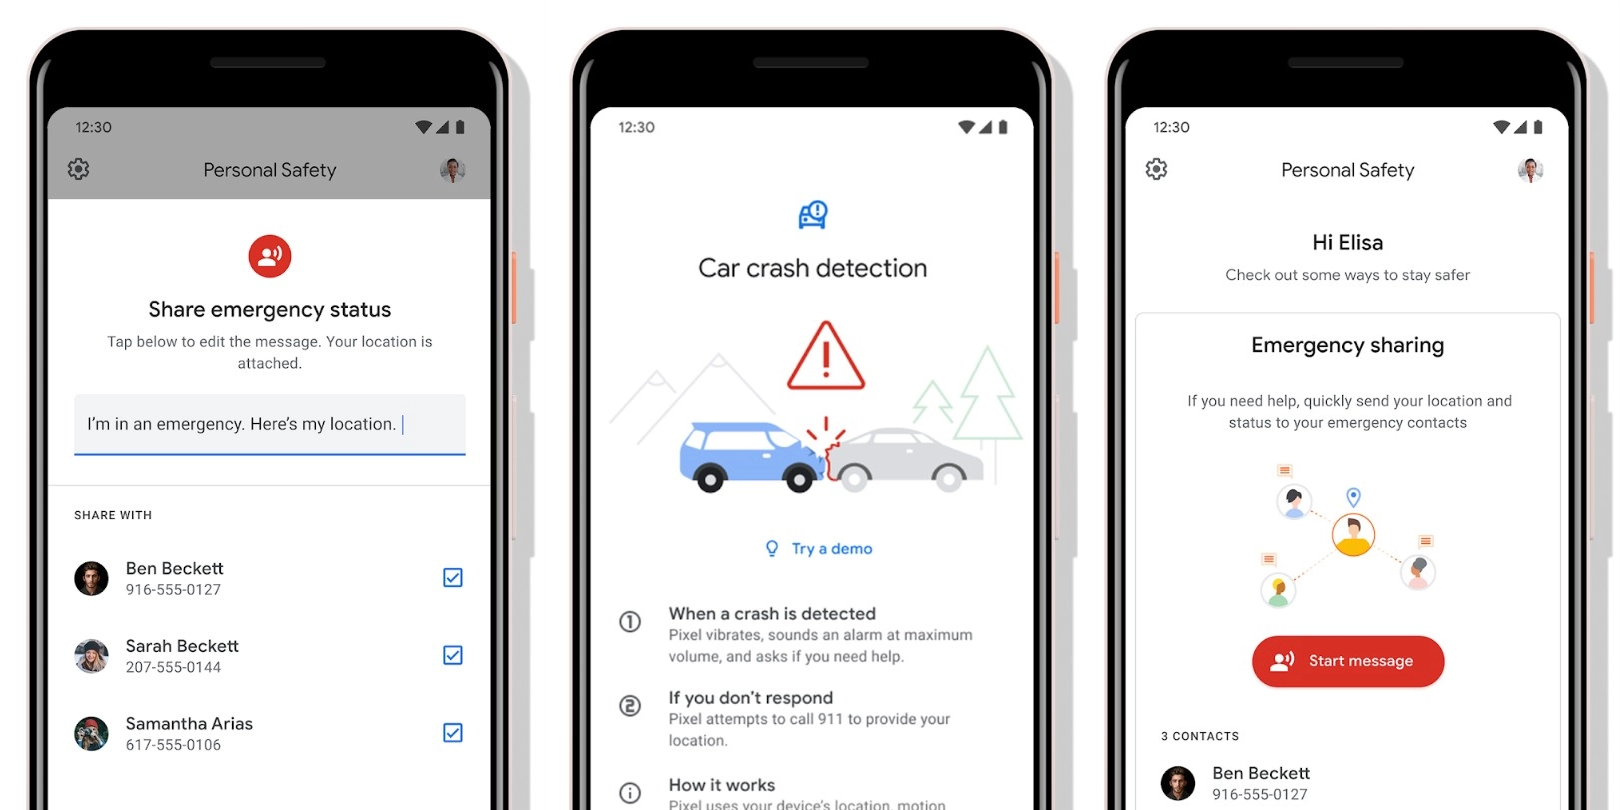 Google Pixel Personal Safety